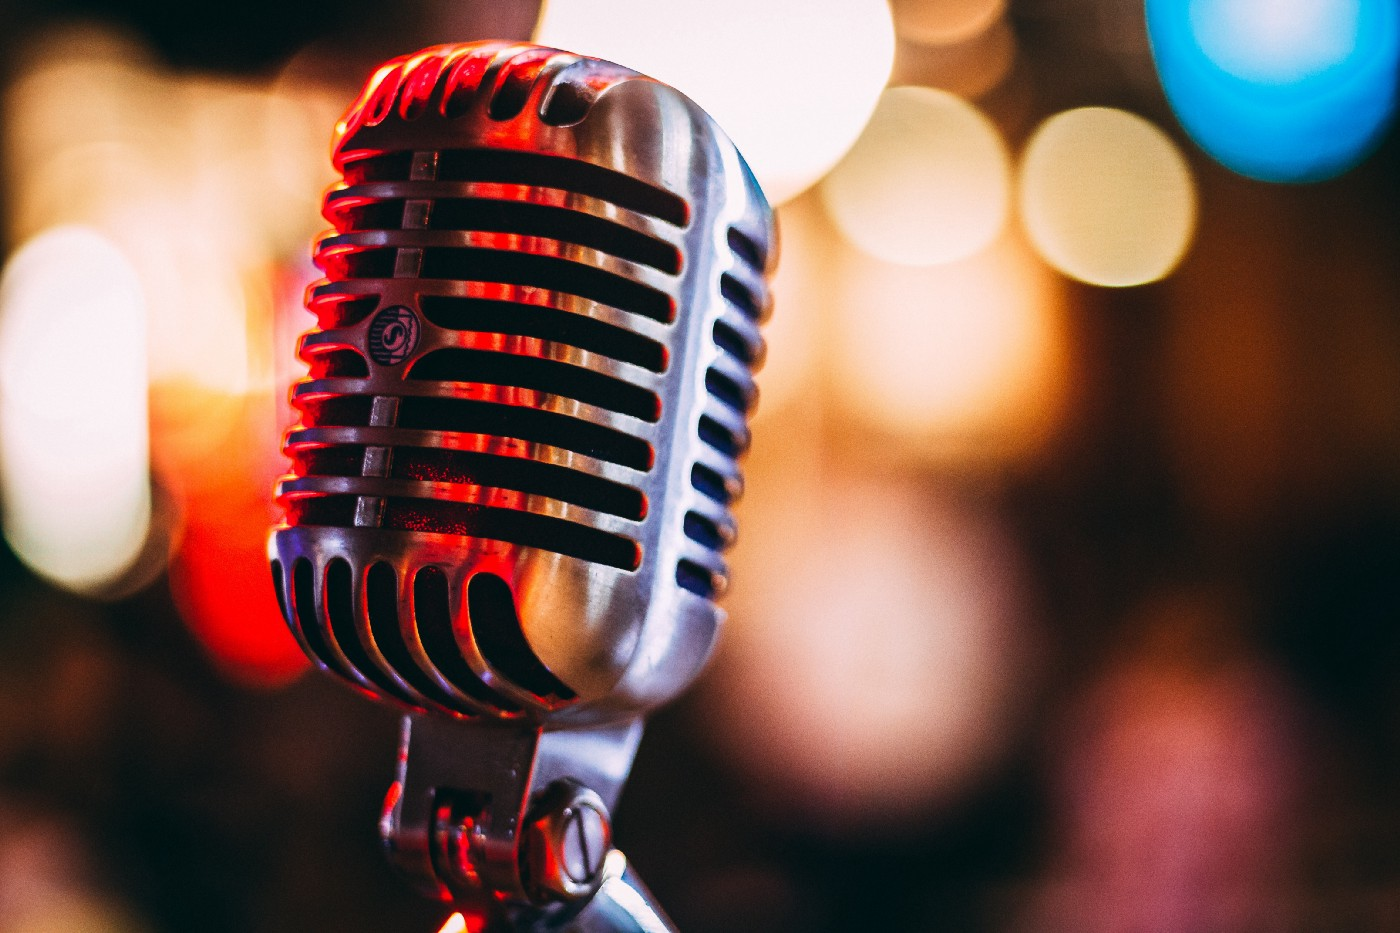 A microphone sits against a lit backdrop.